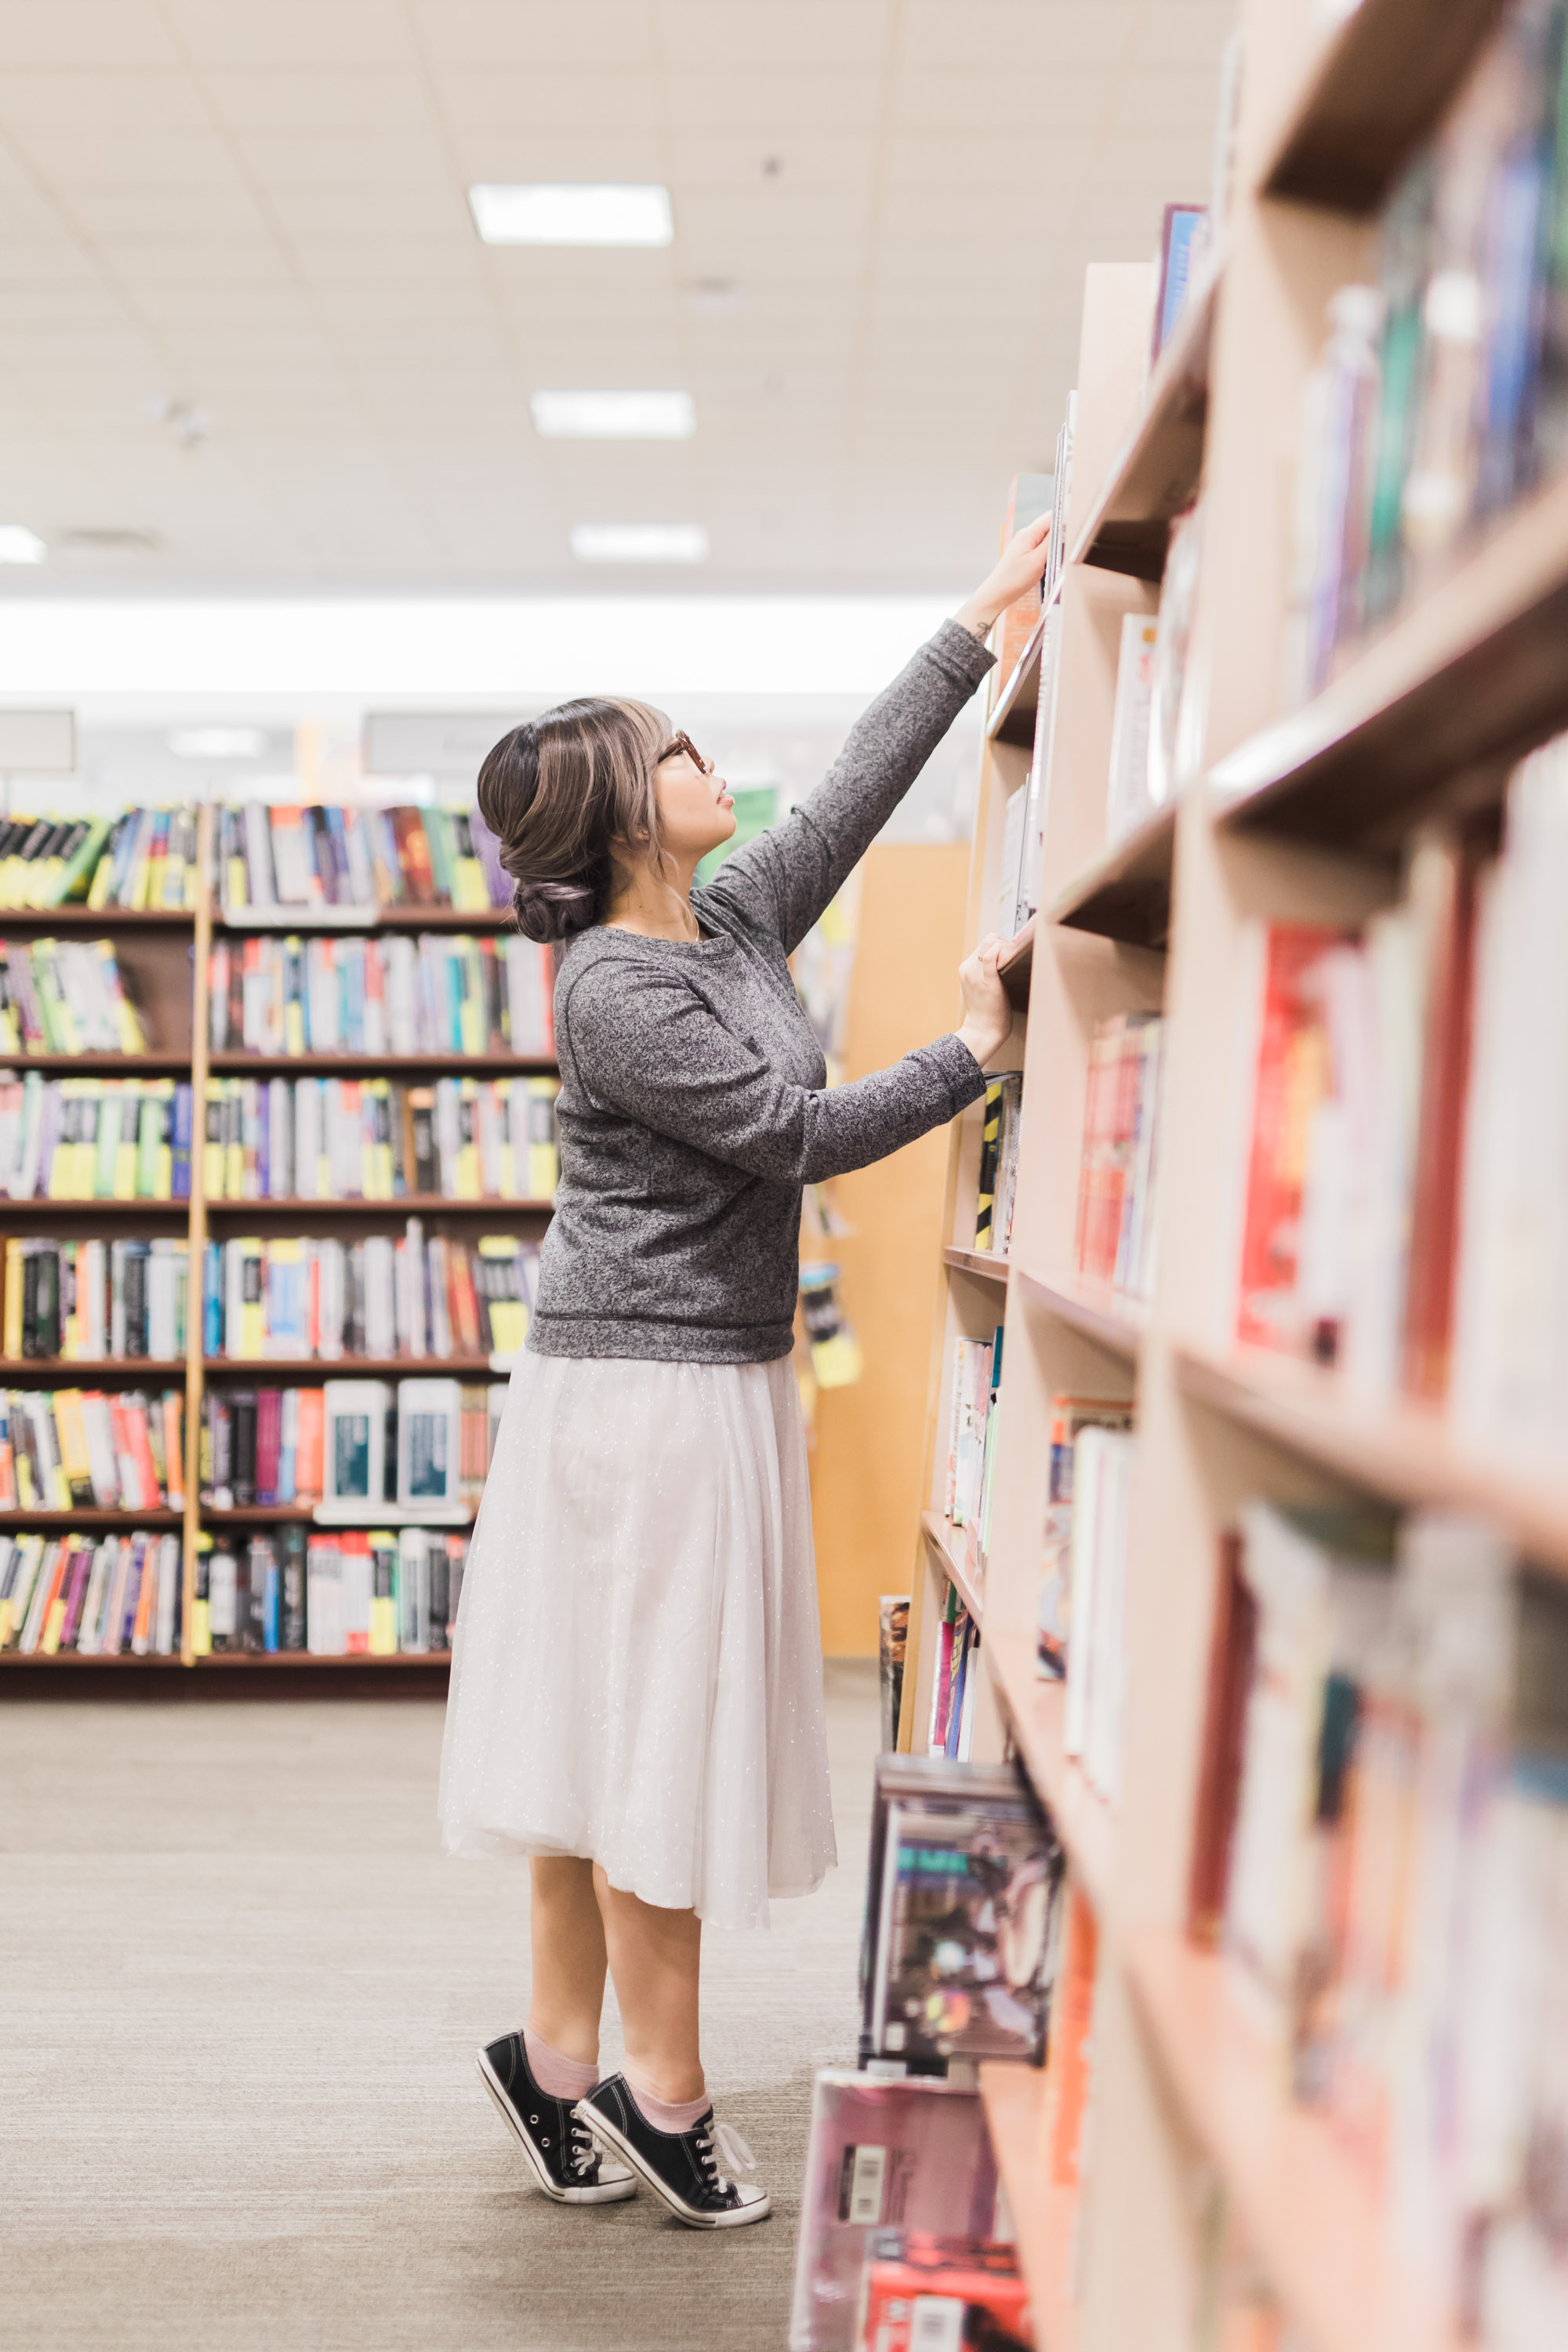 Toronto_Bookstore_Chapters_Engagement_Photos